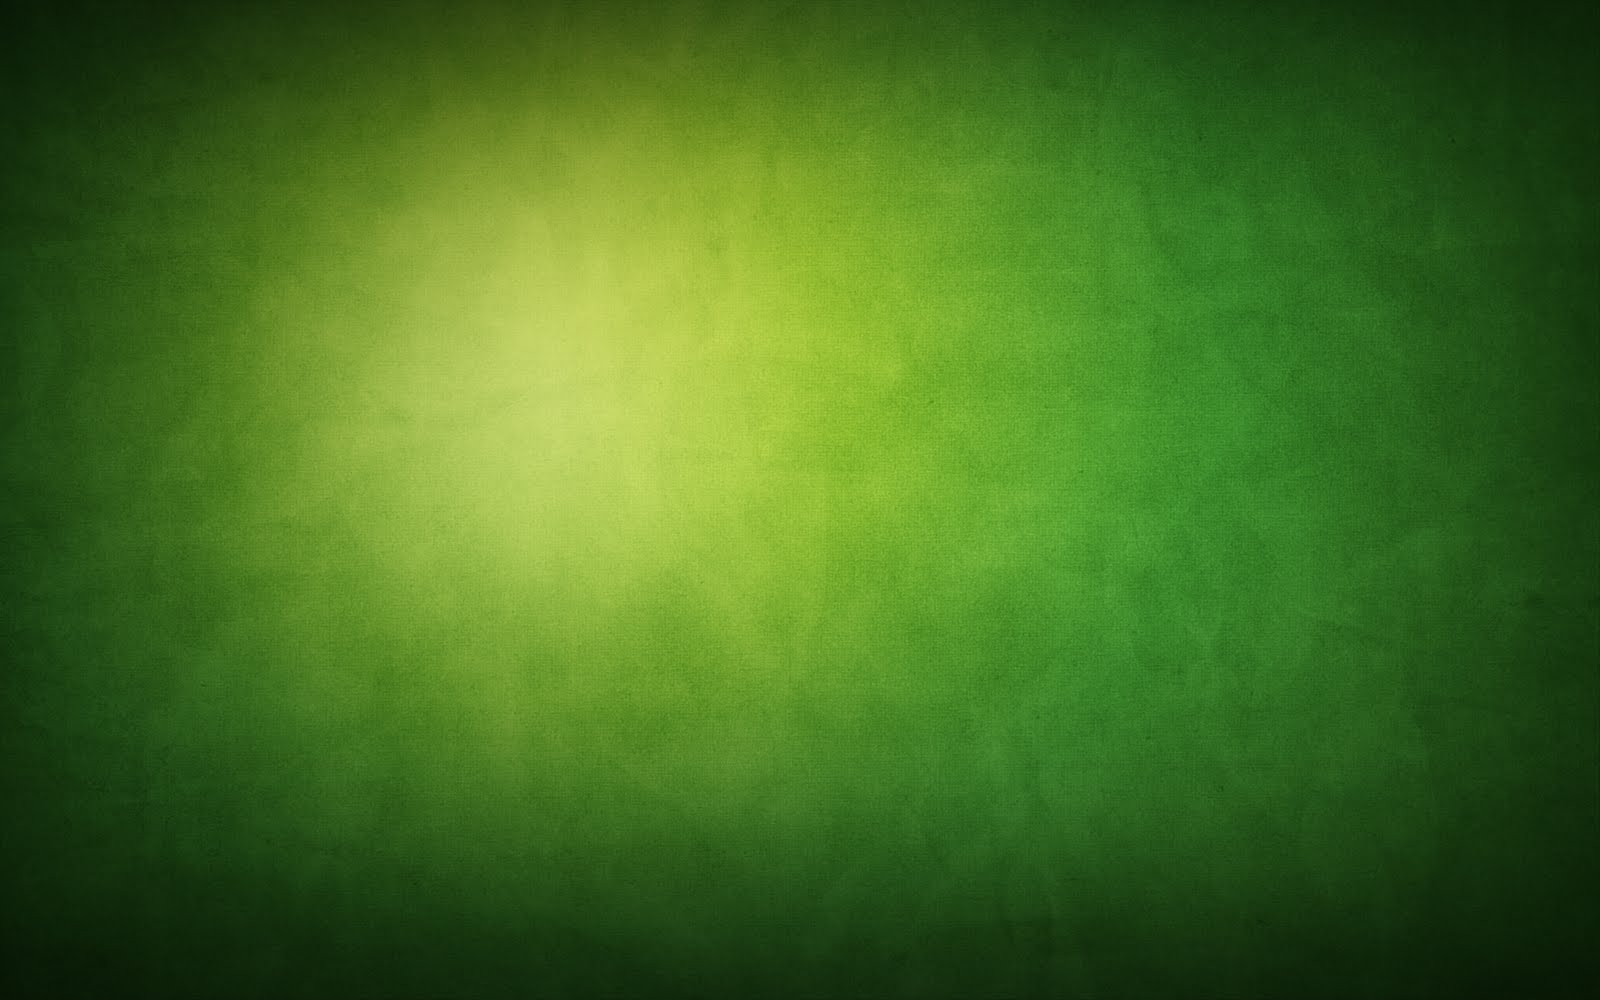 Free Download Download Texture Green Wall Wallpaper